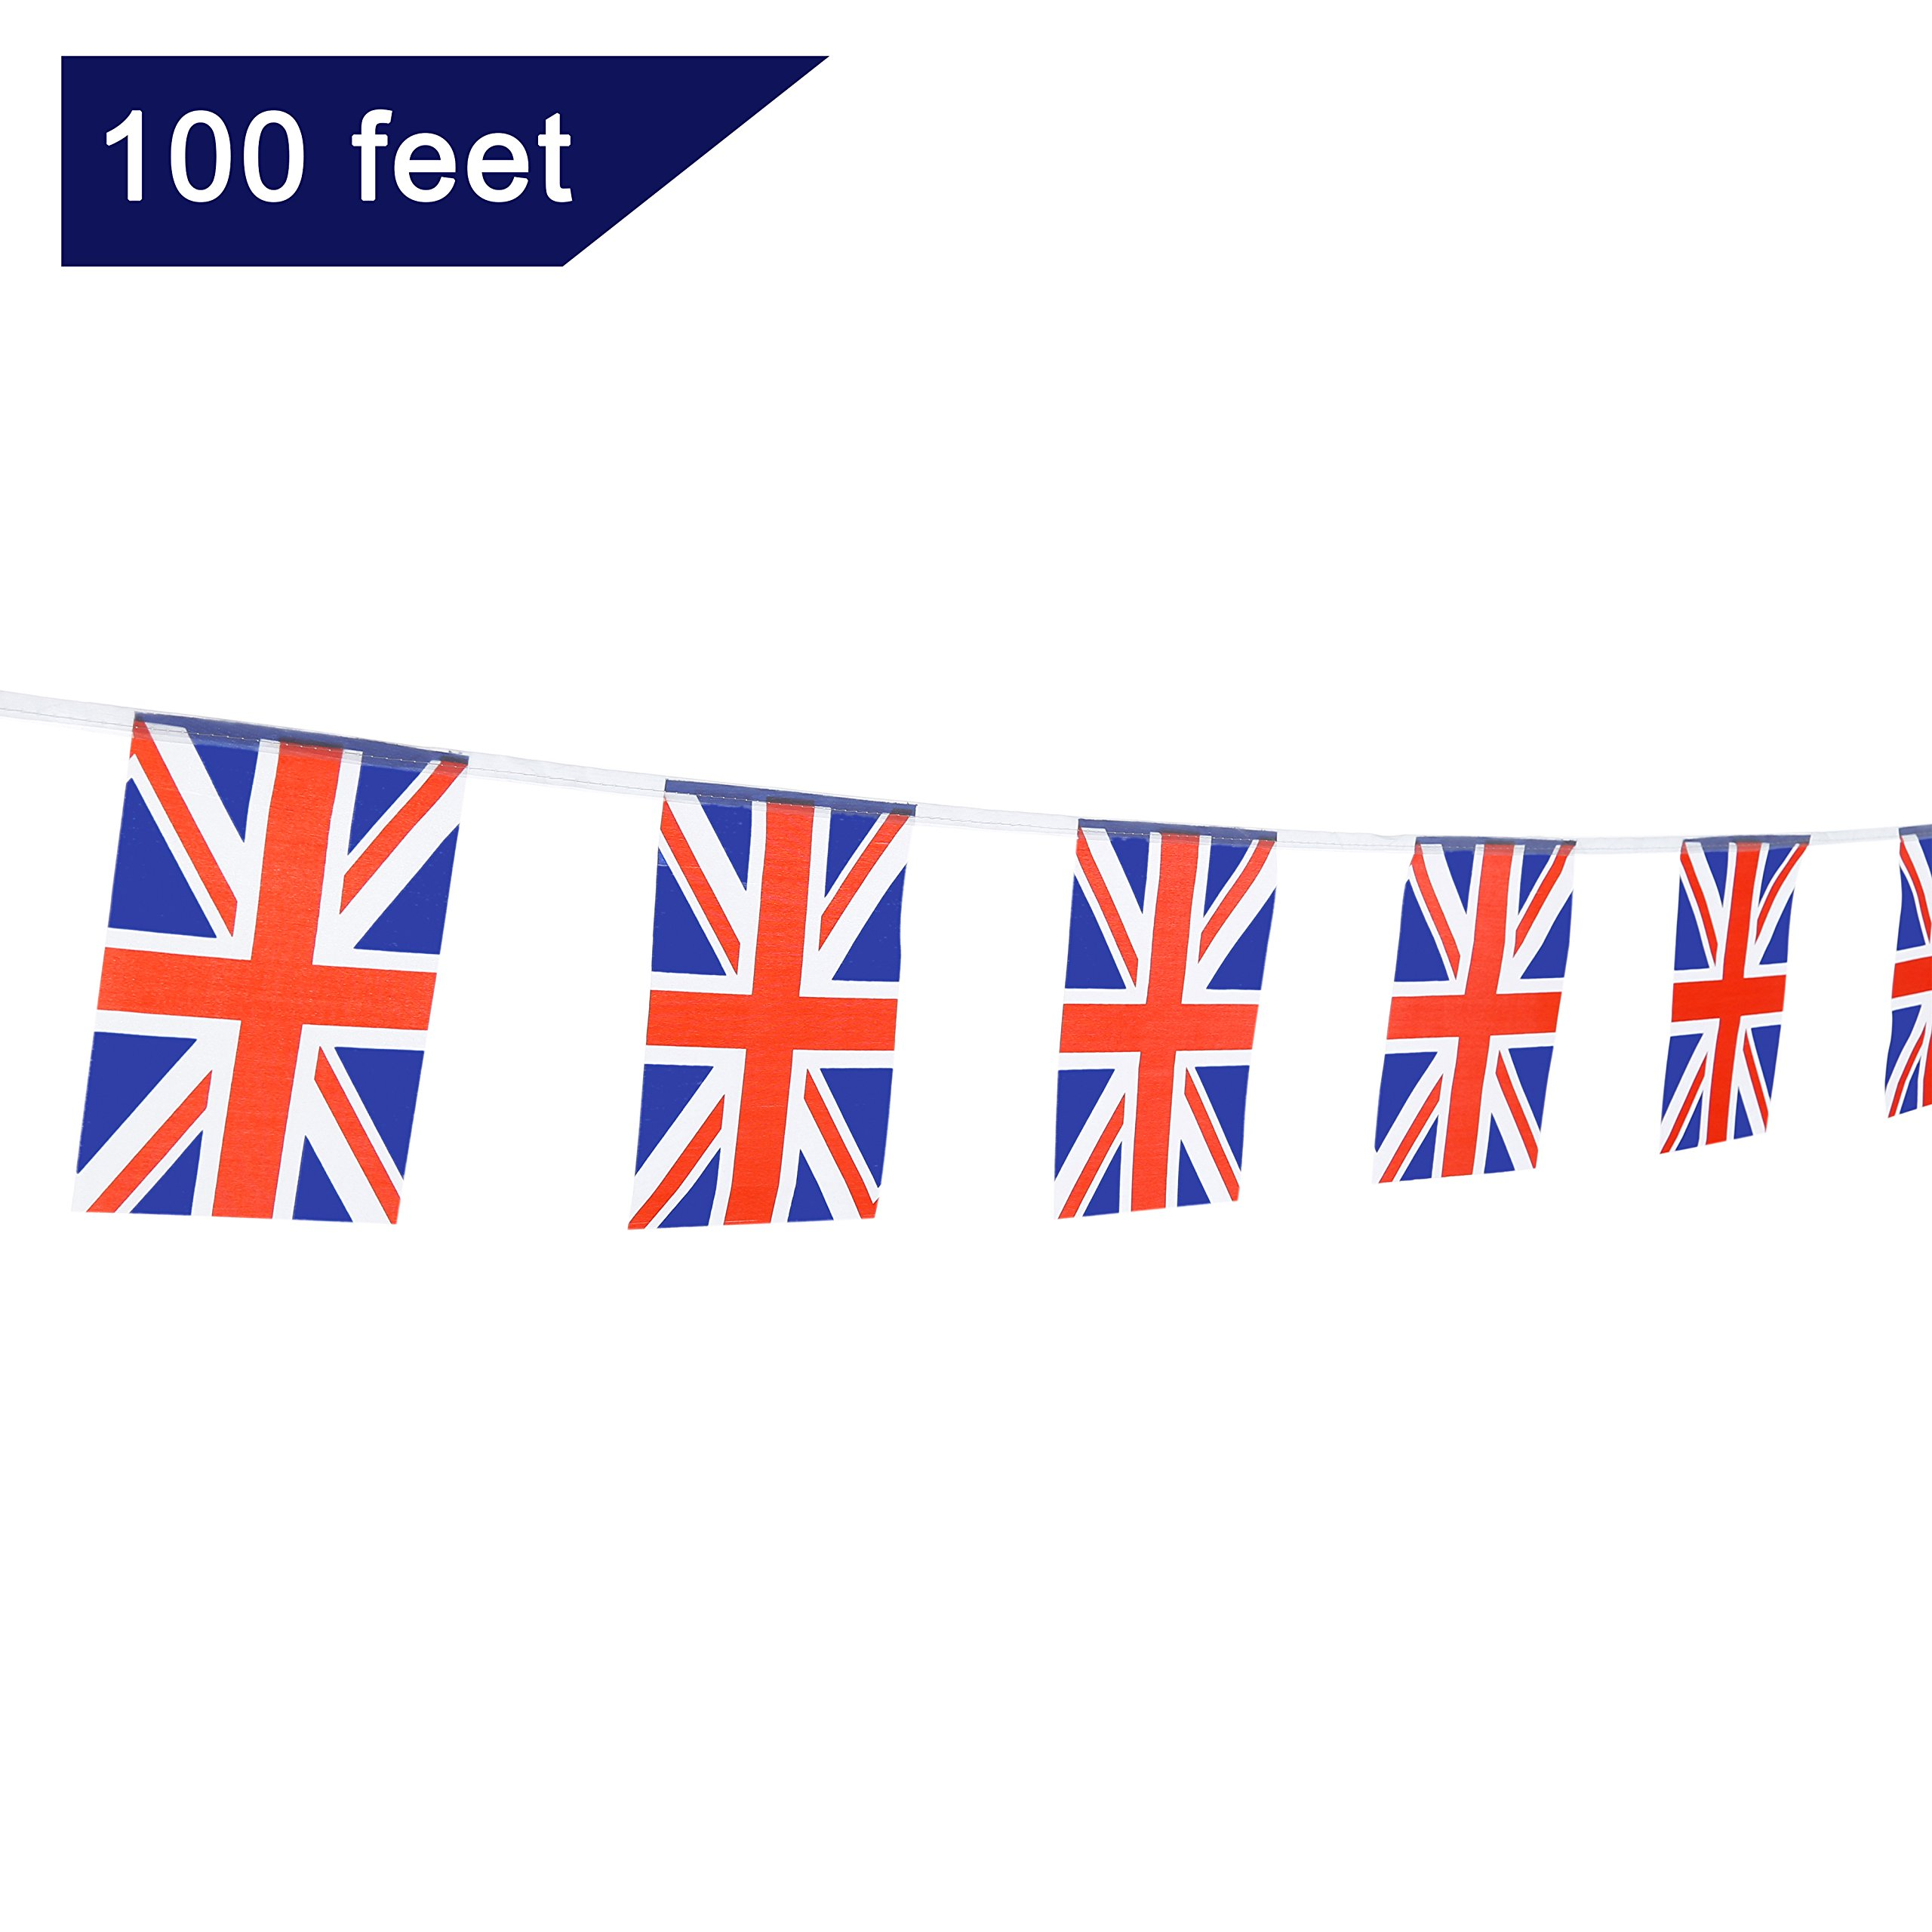 TSMD 100 Feet United Kingdom UK Flag 76Pcs Indoor/Outdoor British Union Jack National Country Flags,Party Decorations Supplies For Grand Opening,Sports Clubs,International Festival,(8.2'' x 5.5'')